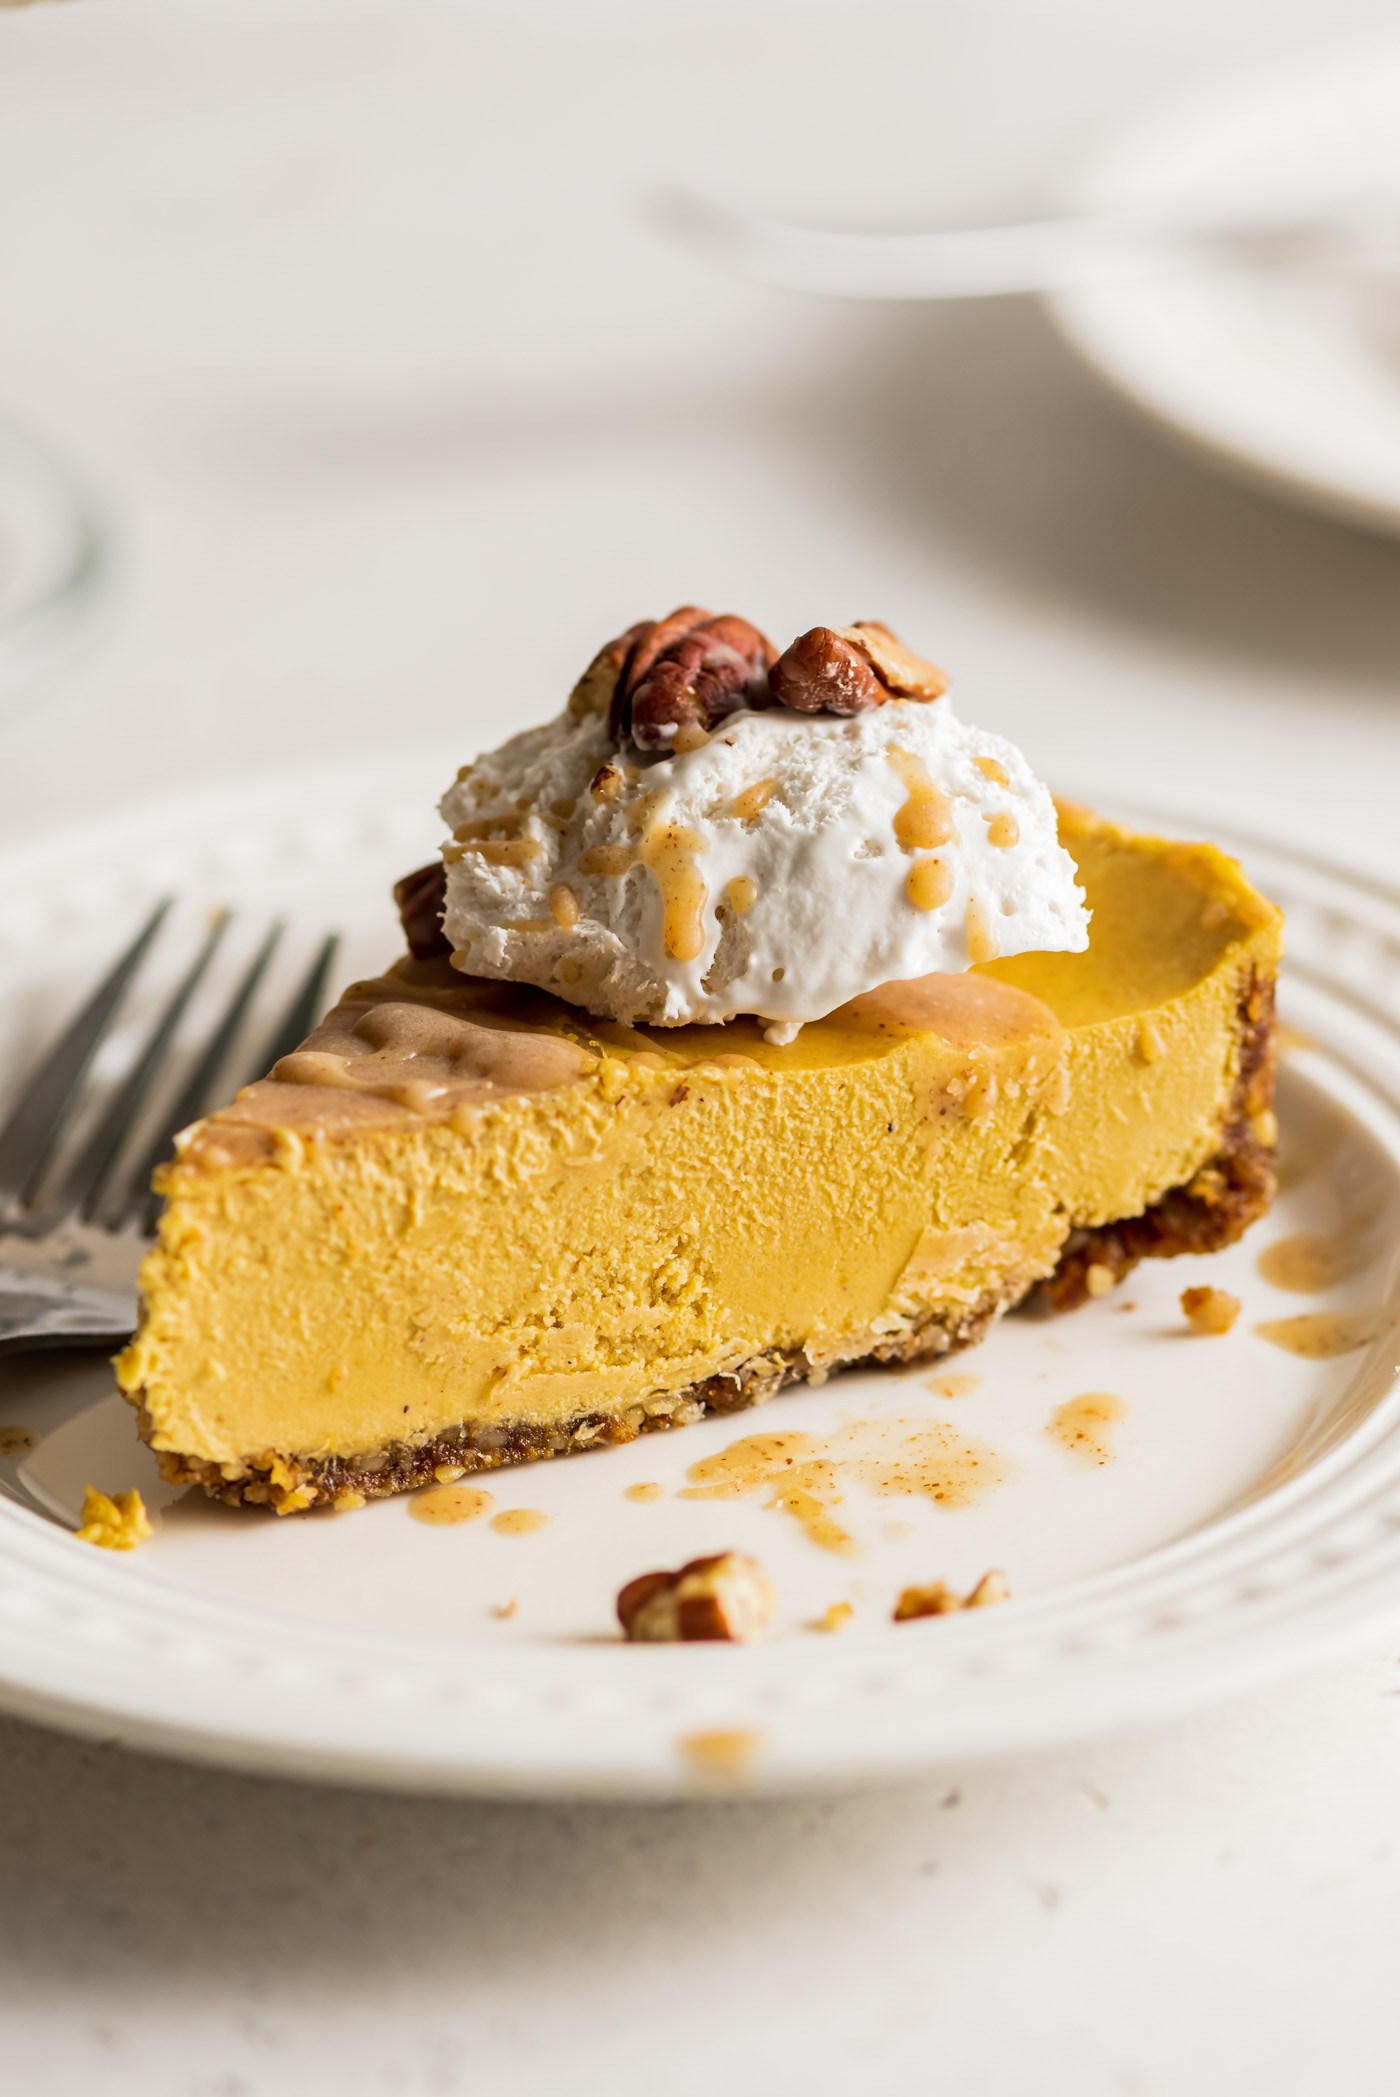 slice of pumpkin cheesecake on a plate topped with whipped cream